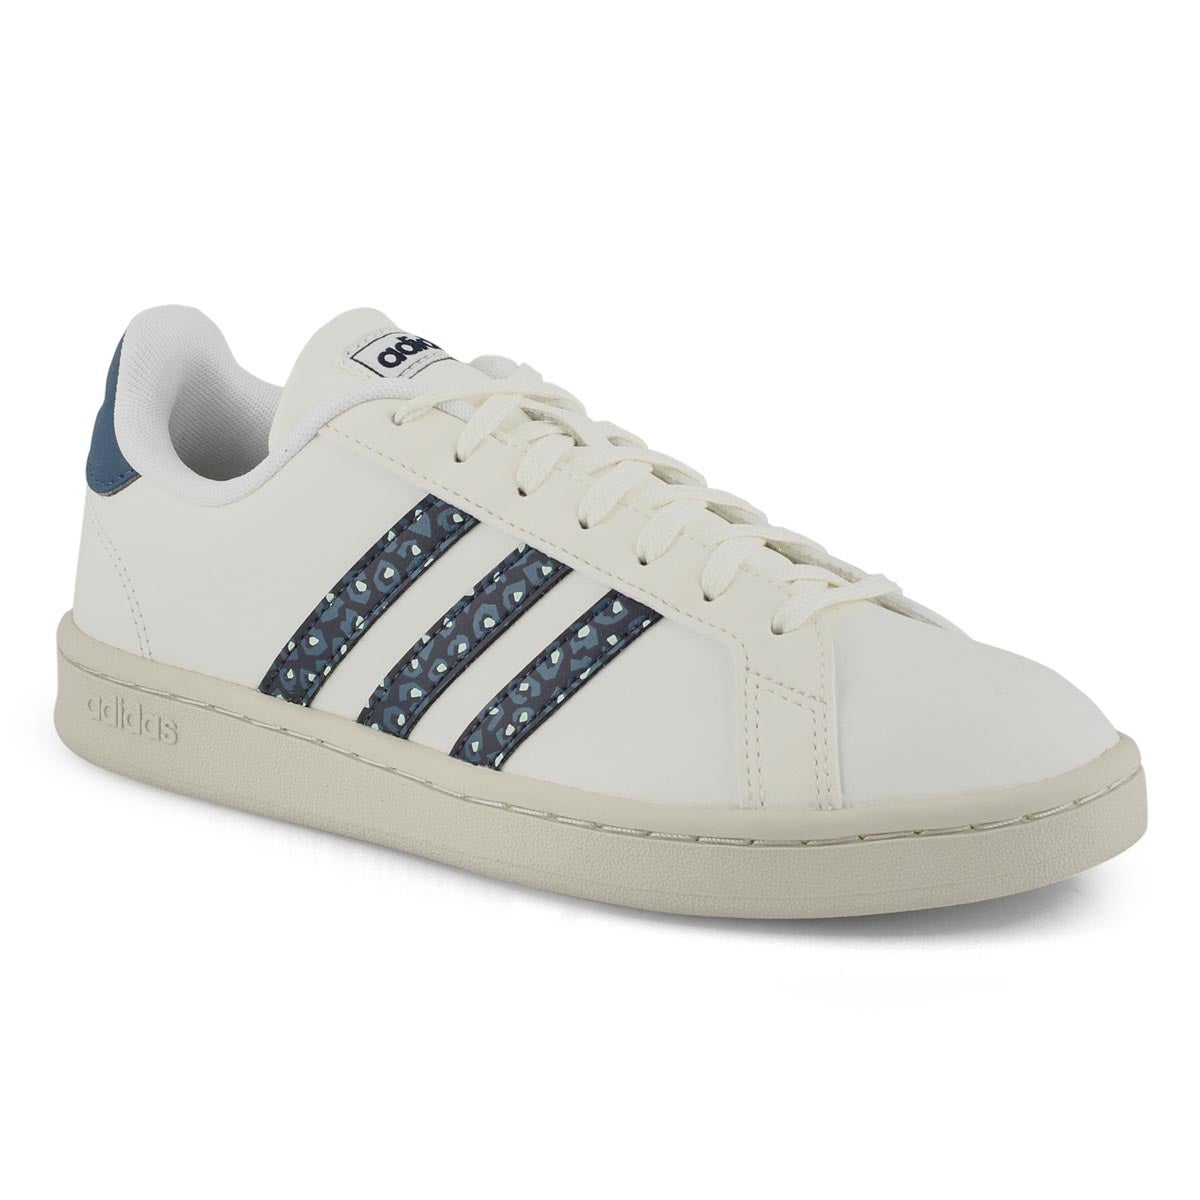 Lds Grand Court wht/gry/ink sneaker